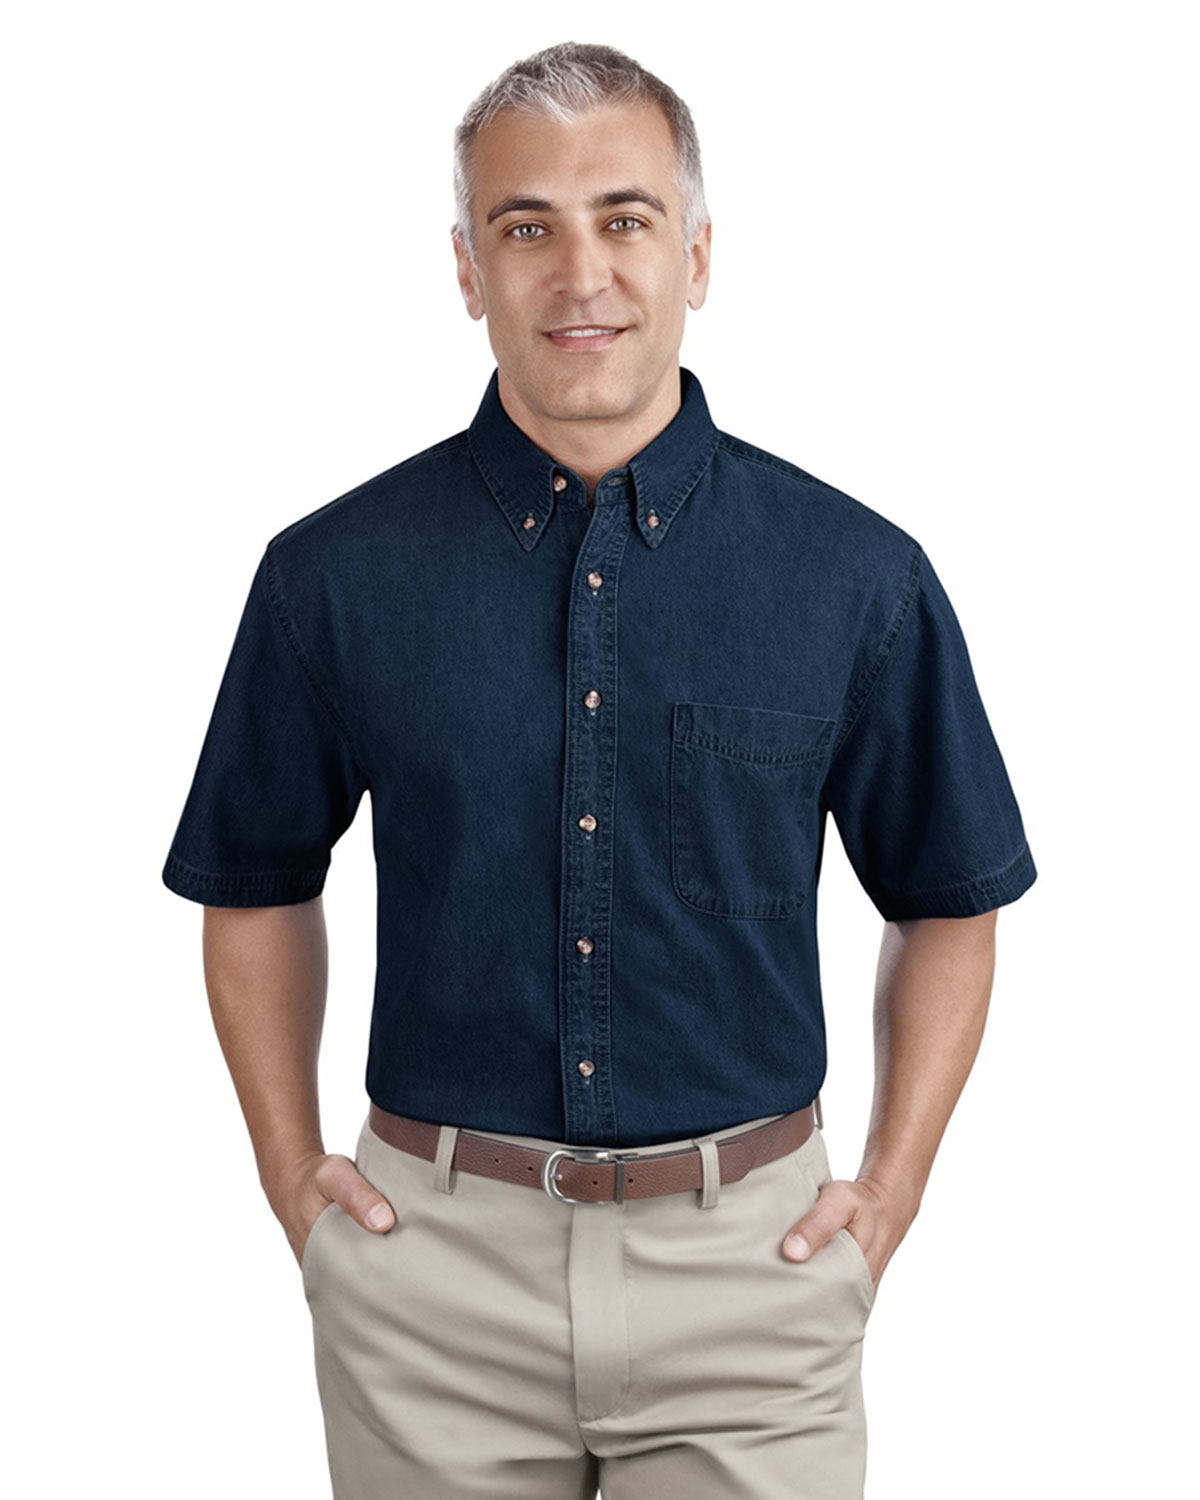 Mens Short Sleeve Value Denim Shirt At Big And Tall